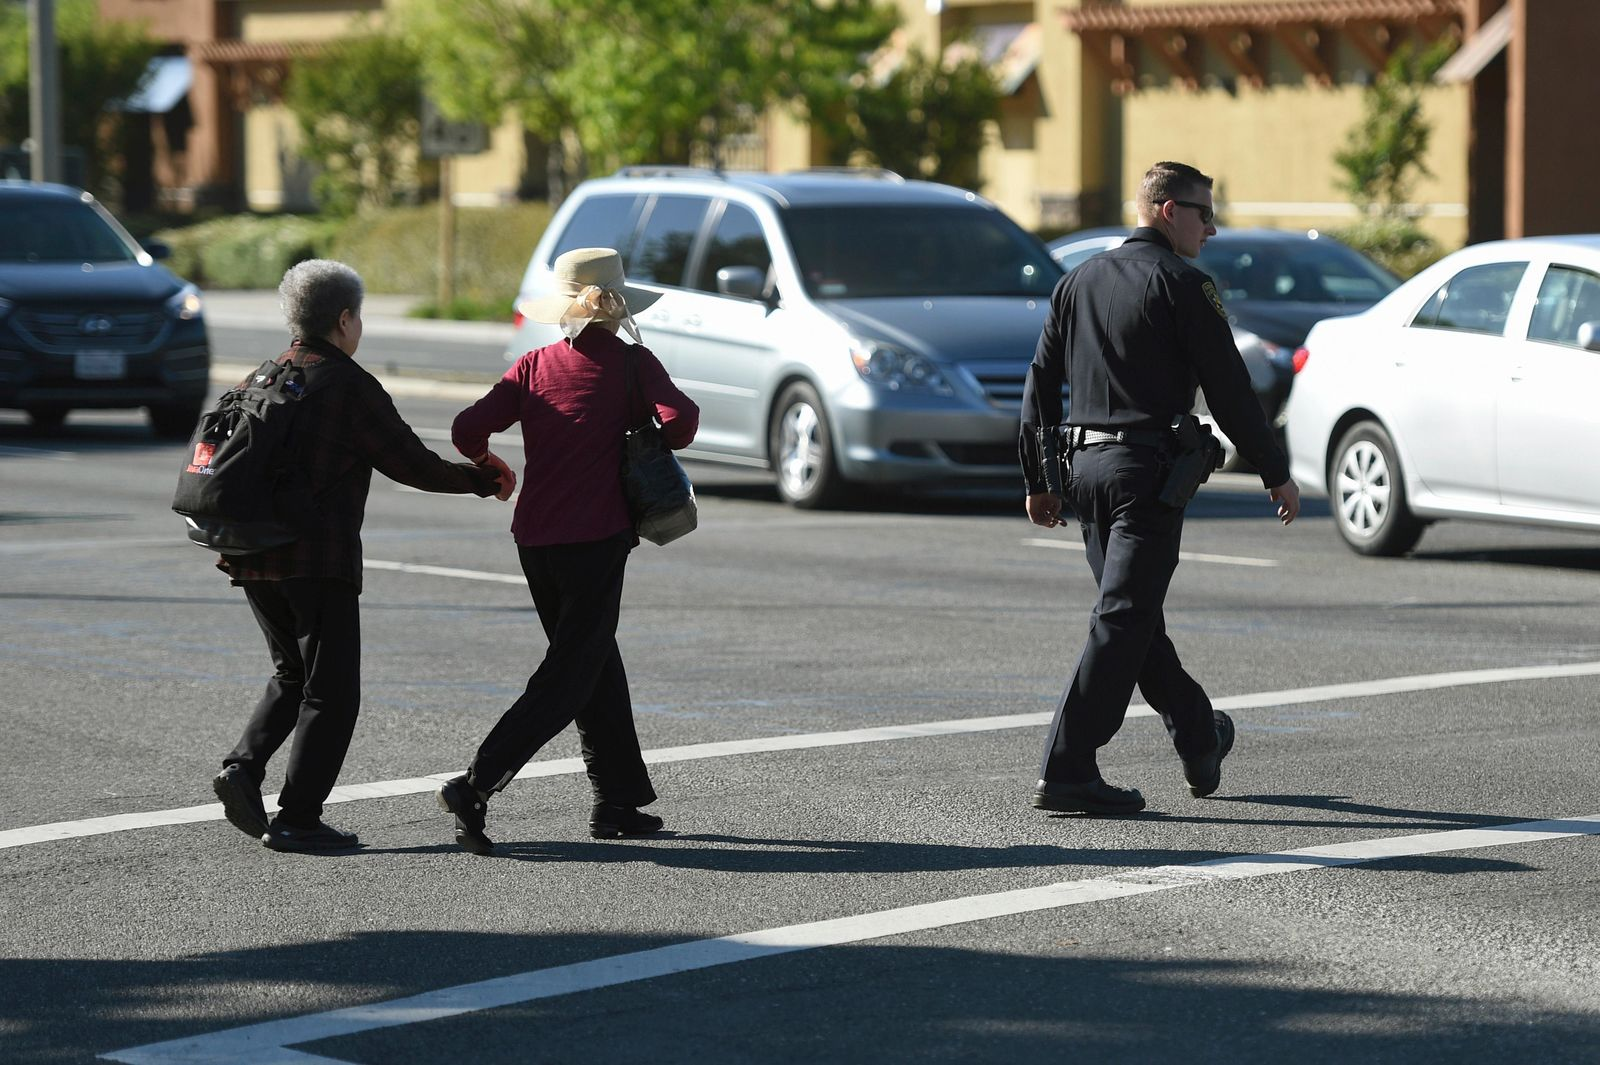 A police officer escorts pedestrians across El Camino Real near the scene of car crash at the intersection of El Camino Real and Sunnyvale Road in Sunnyvale, Calif., on Wednesday, April 24, 2019. Investigators are working to determine the cause of the crash in Northern California that injured several pedestrians on Tuesday evening. Authorities say the driver of the car was taken into custody after he appeared to deliberately plow into the group. (AP Photo/Cody Glenn)